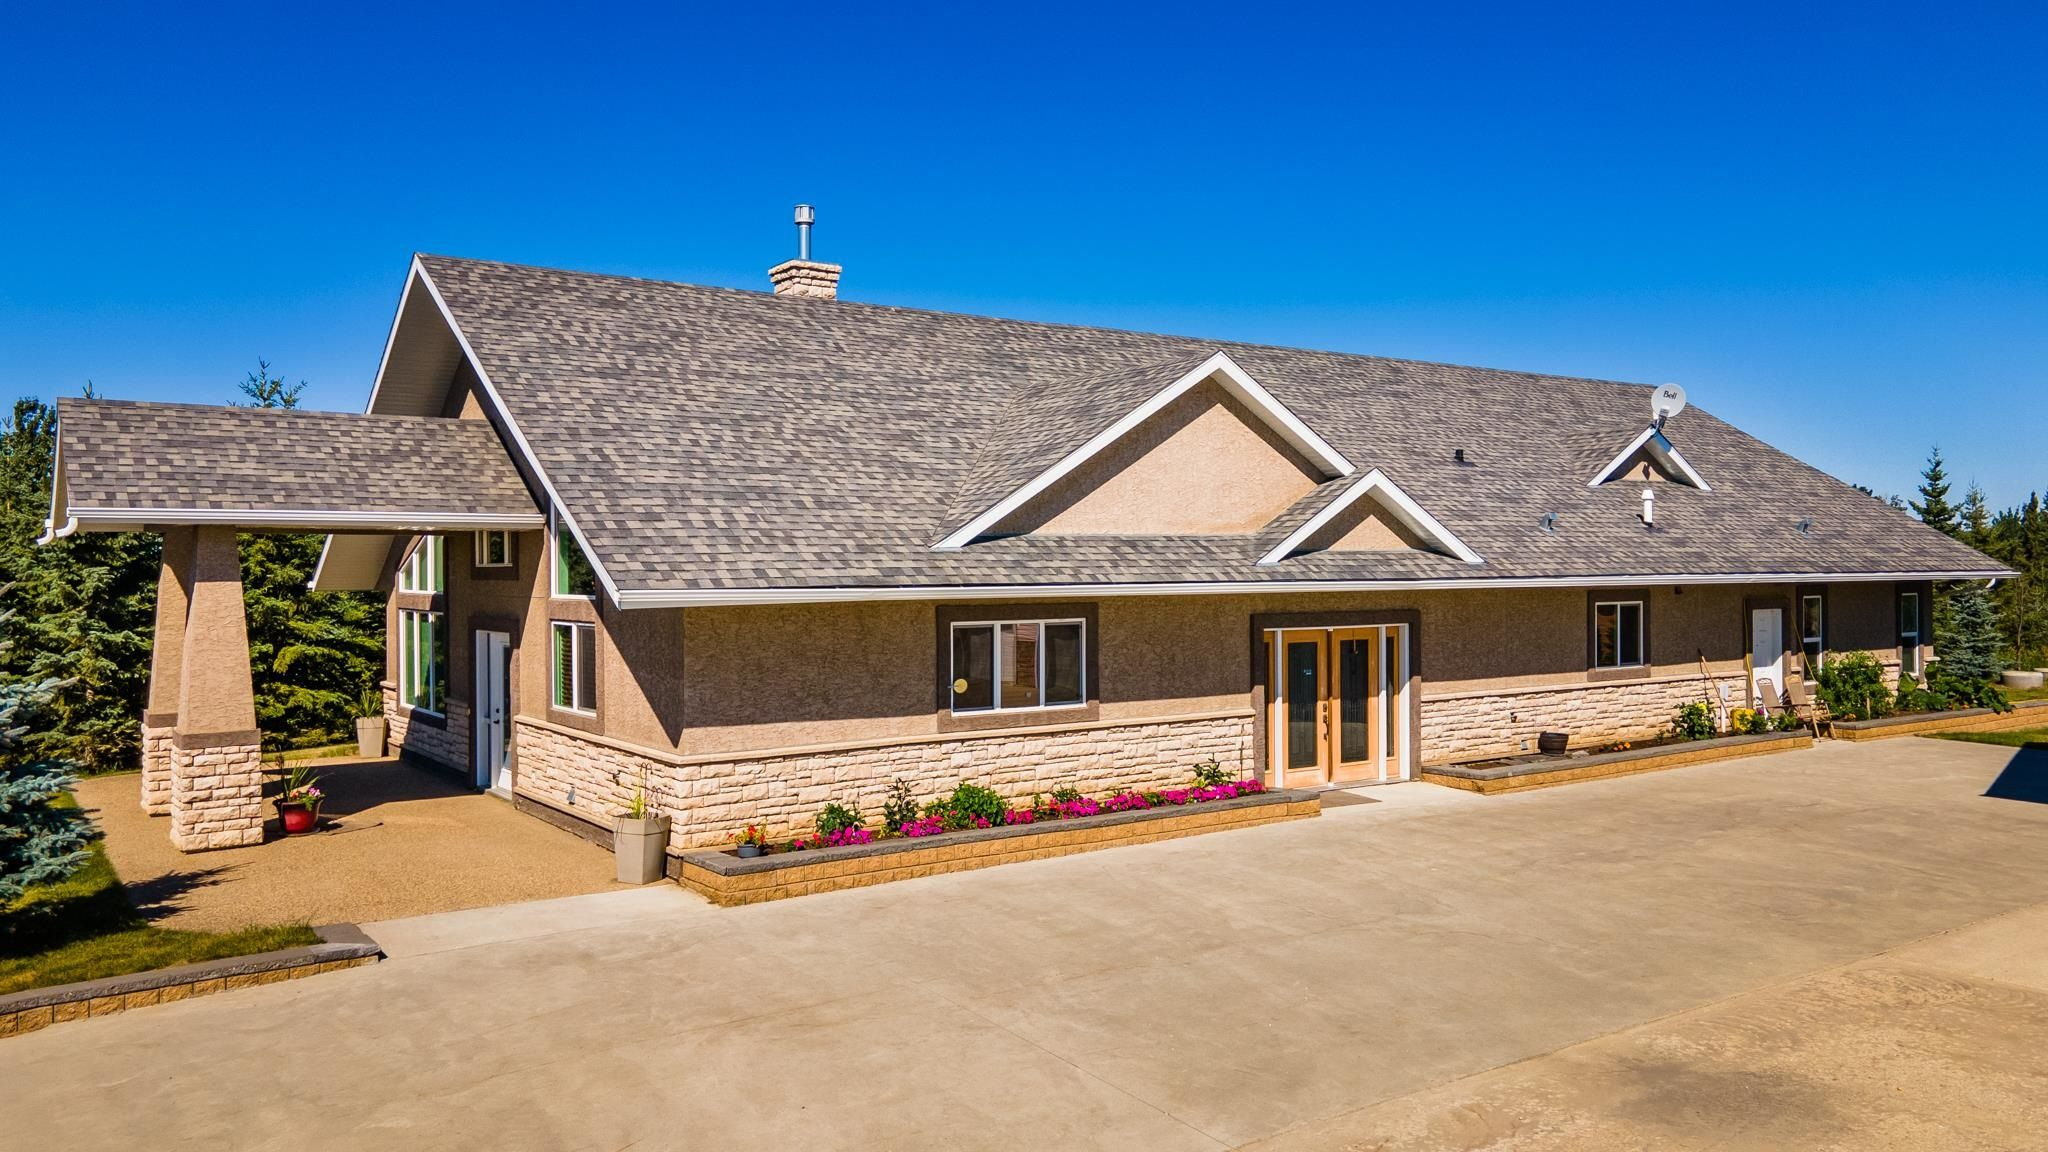 Main Photo: 52305 RGE RD 30: Rural Parkland County House for sale : MLS®# E4258061